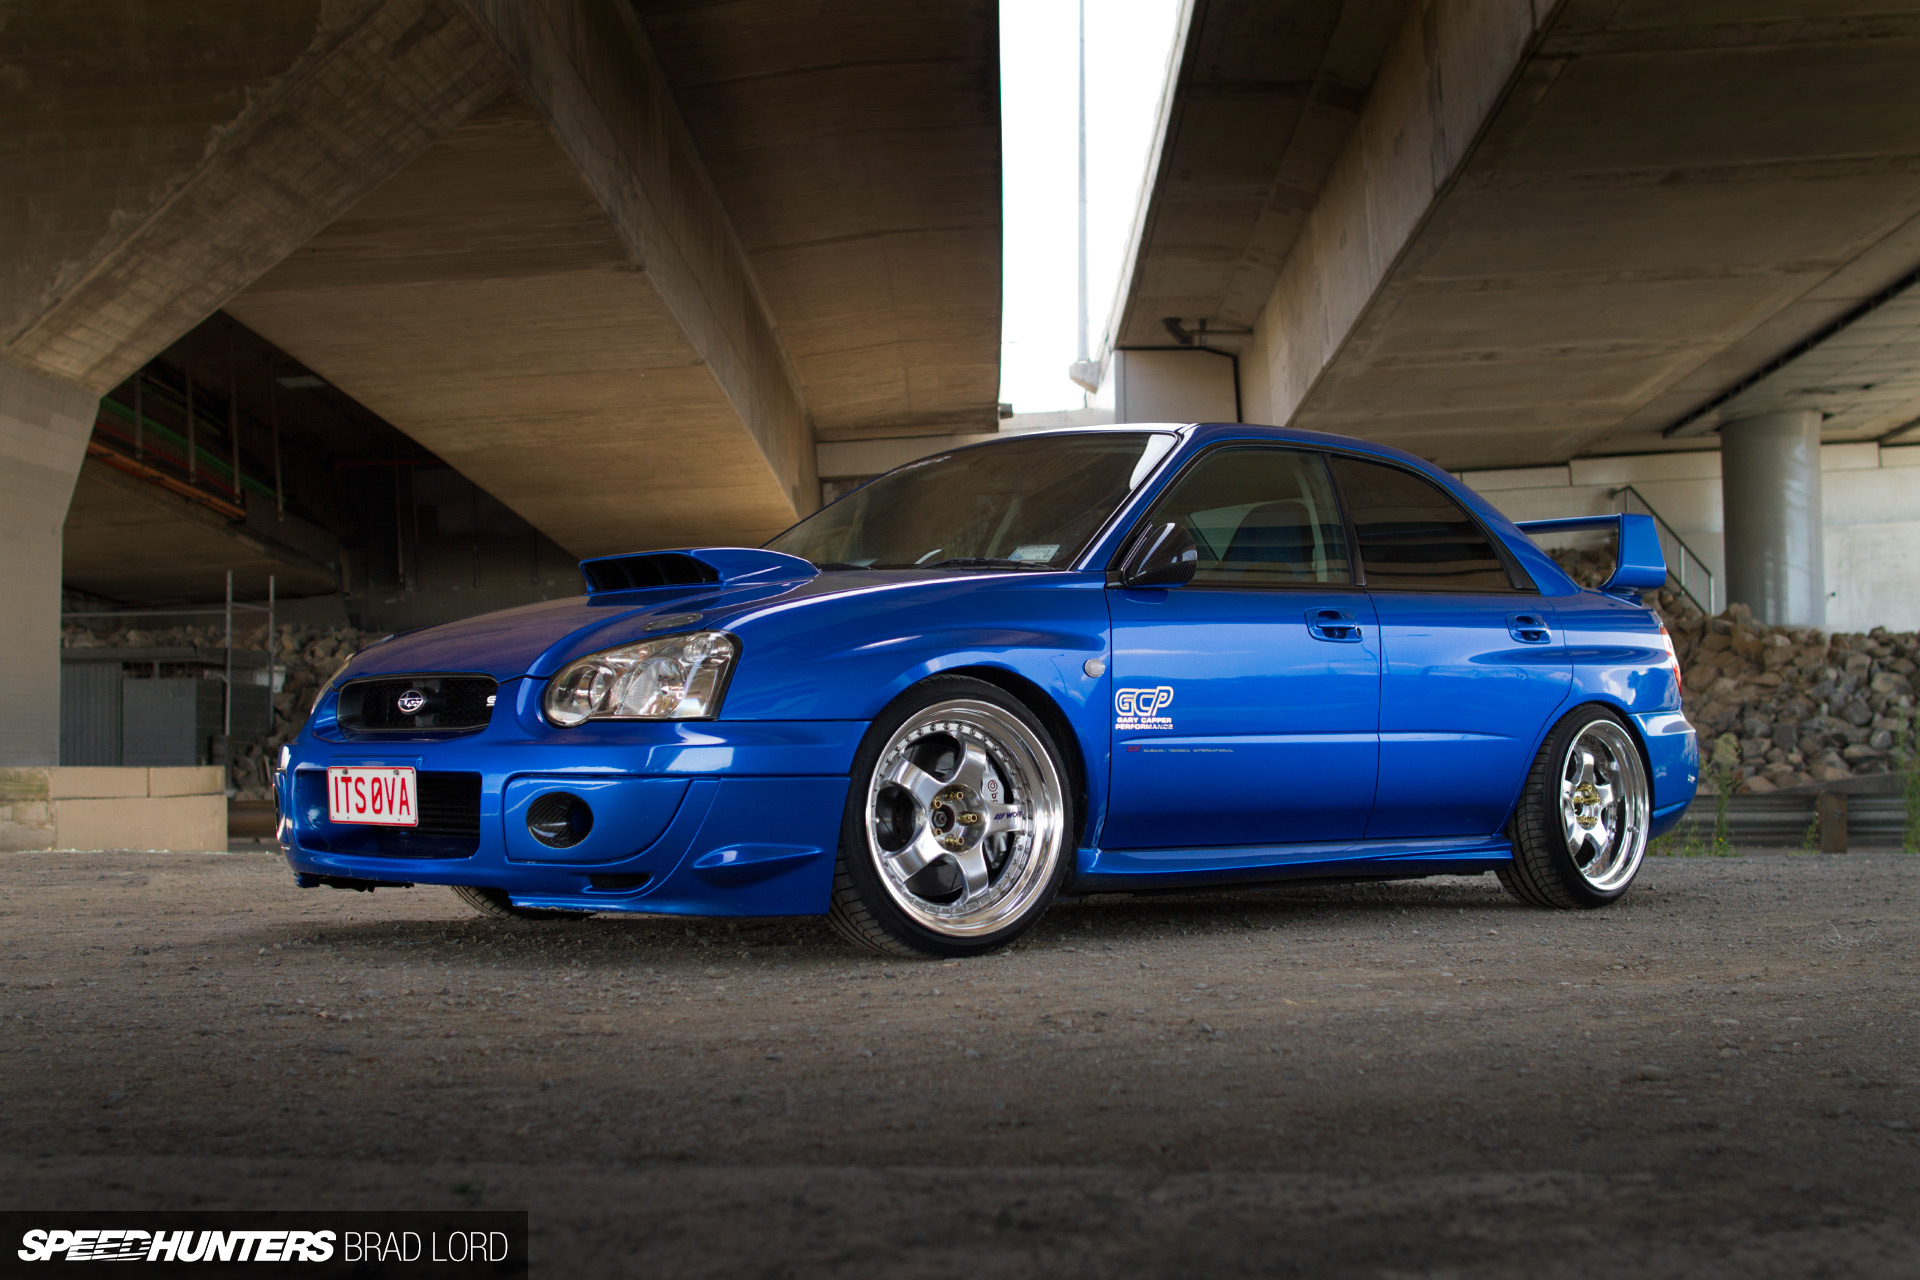 Gcp Wrx Sti moreover Upowphz likewise F C C E B besides Wrx Ac besides My Wrx. on blue 2004 subaru wrx wagon